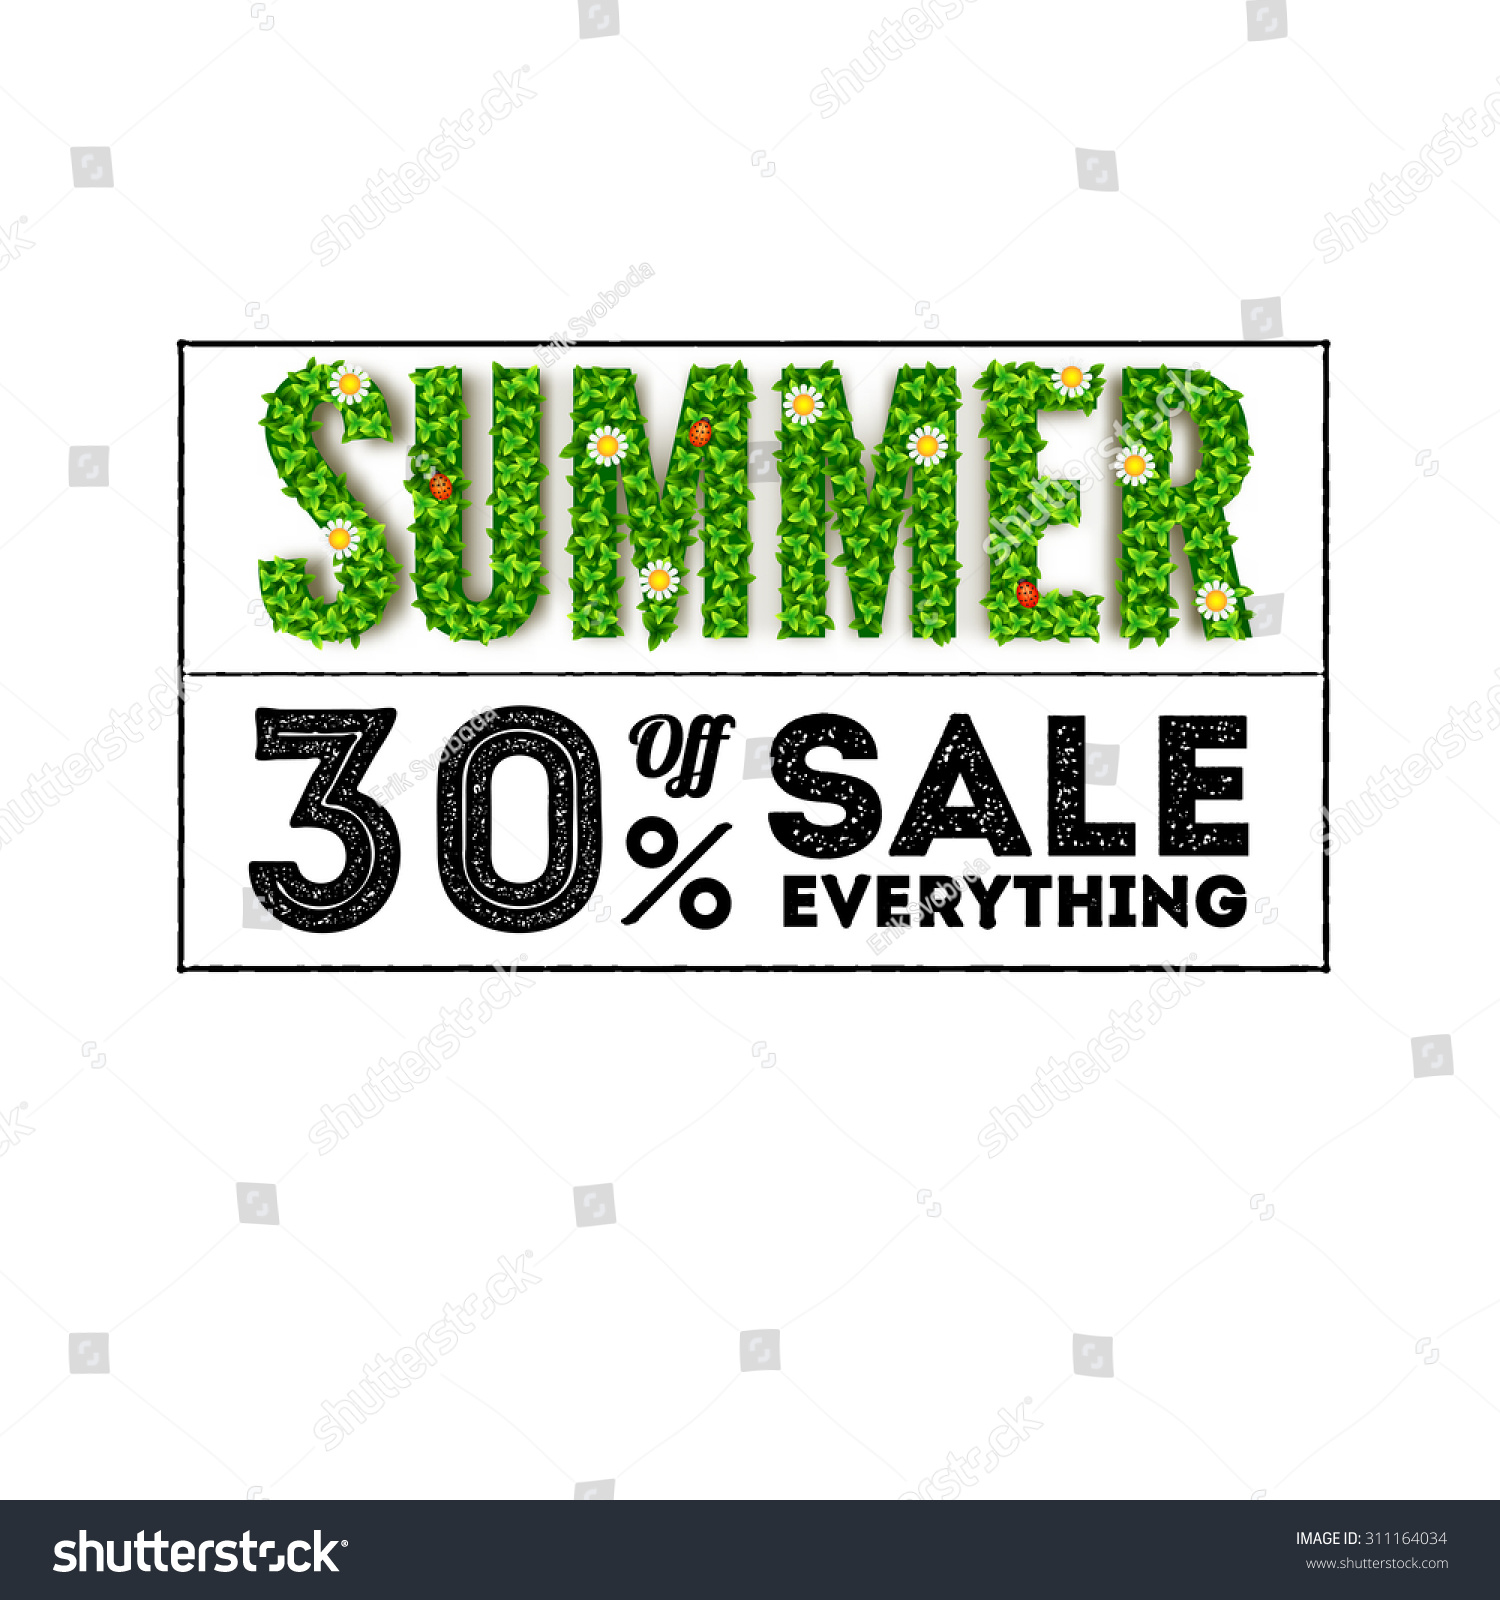 Large Letters For Sale Gorgeous Summer Sale Large Letters Green Foliage Stock Vector 311164034 Design Decoration